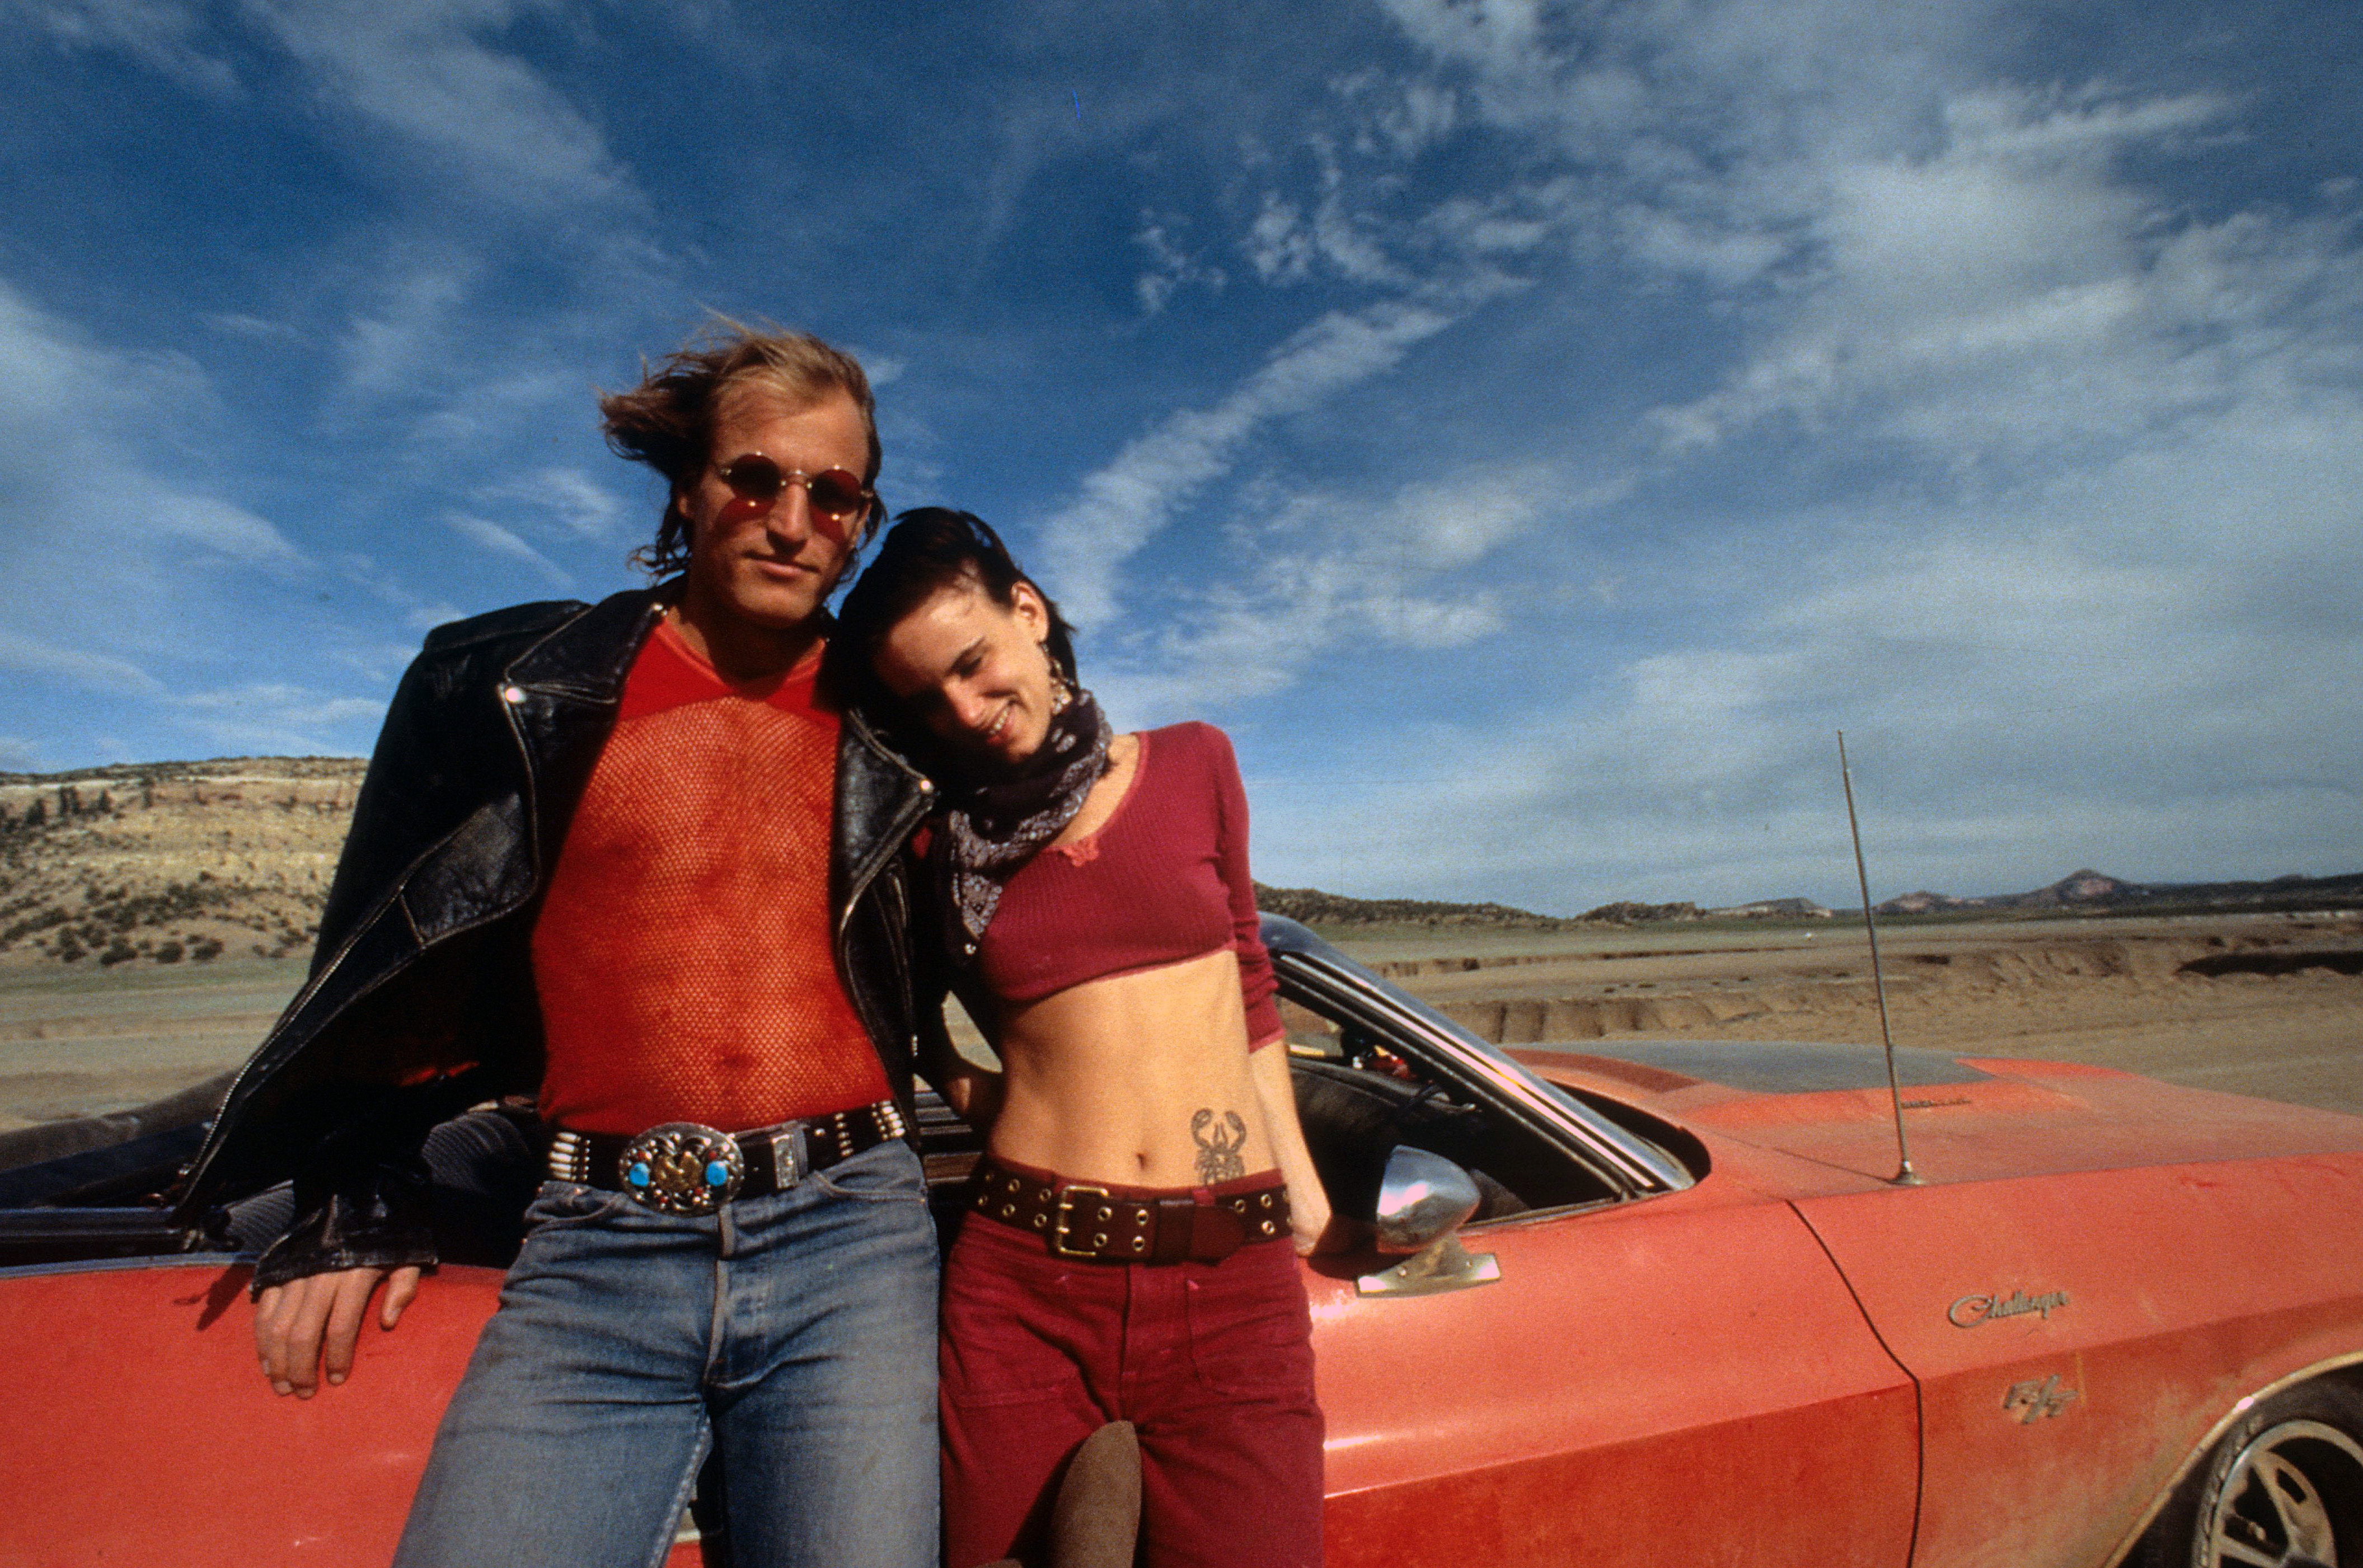 Woody Harrelson And Juliette Lewis In 'Natural Born Killers'